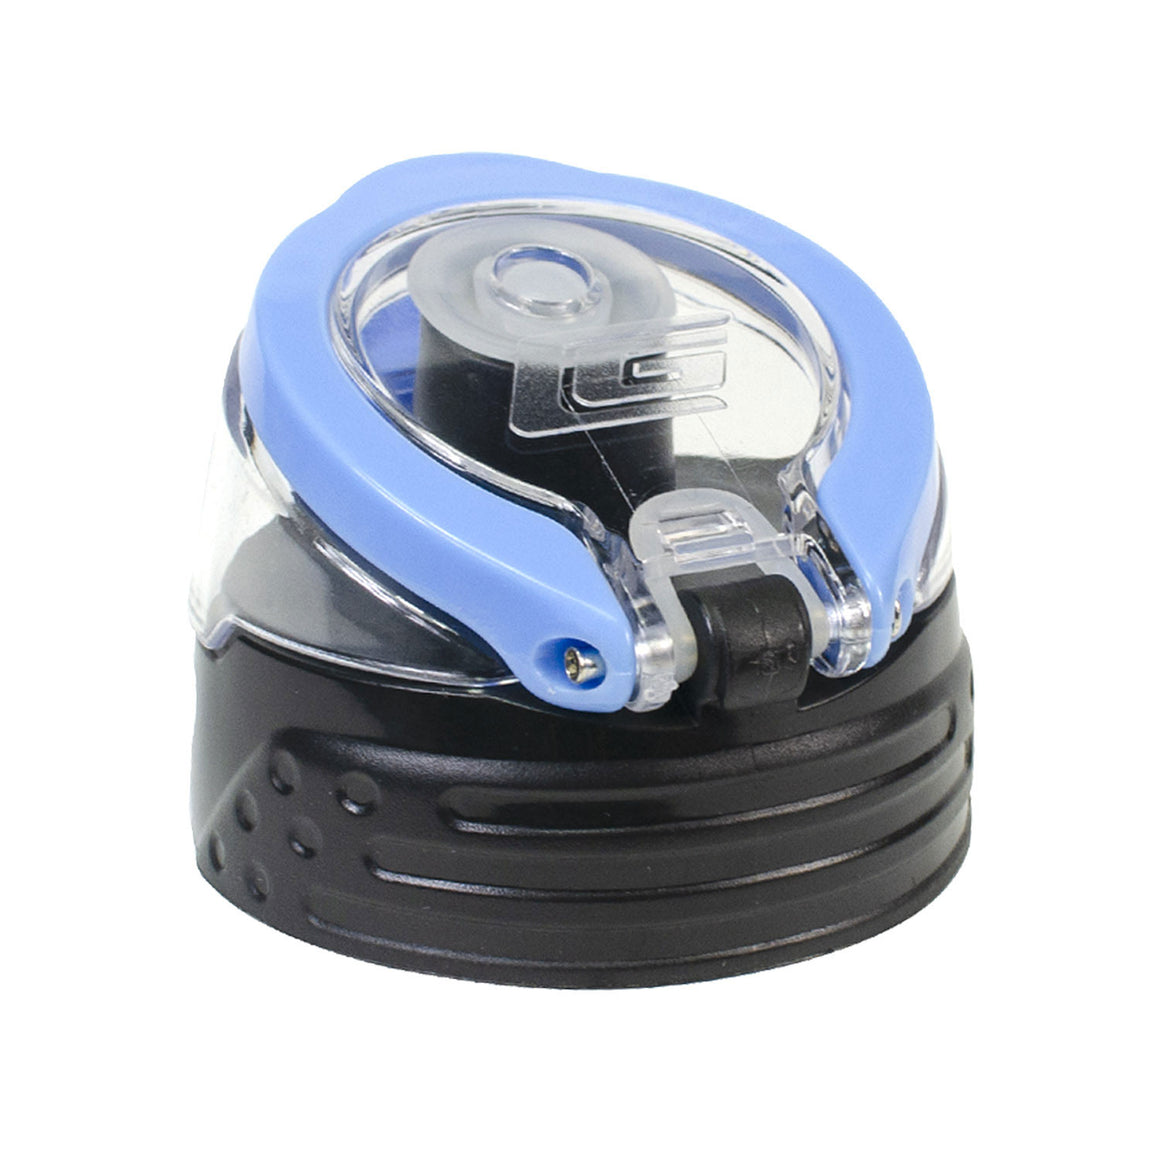 Cool Gear | Replacement Halo Chugger Cap in Black / Light Blue